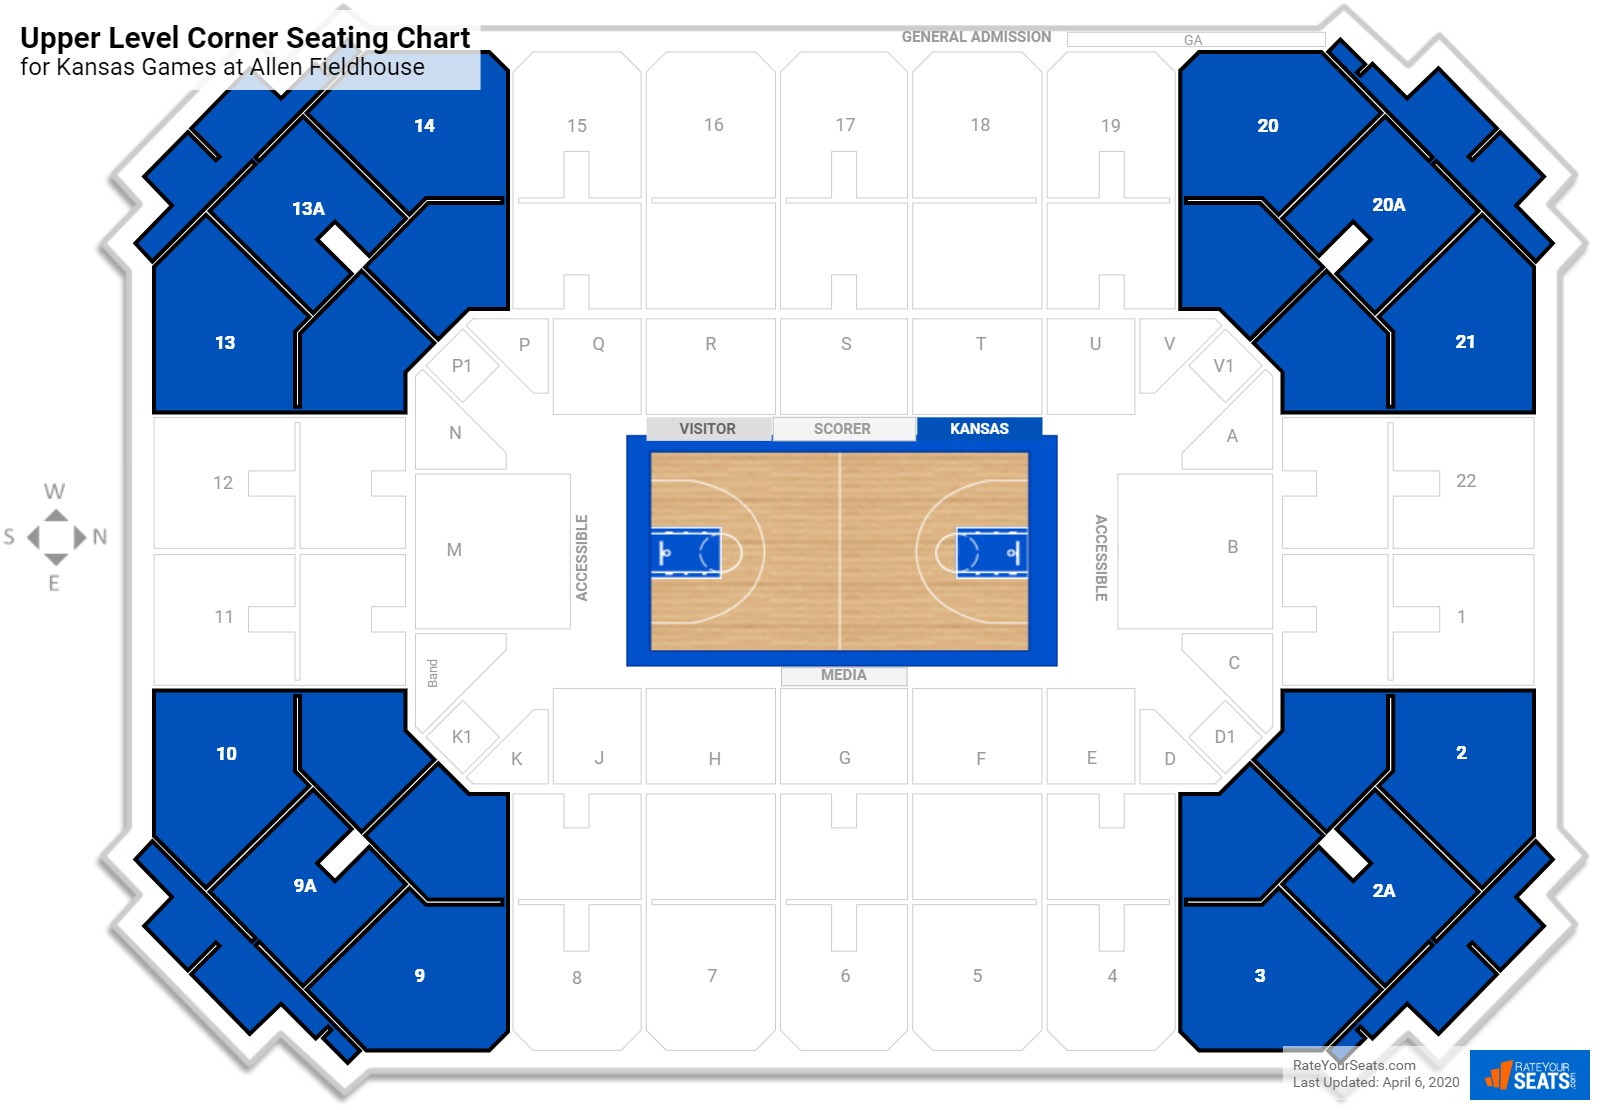 allen fieldhouse seating chart with rows